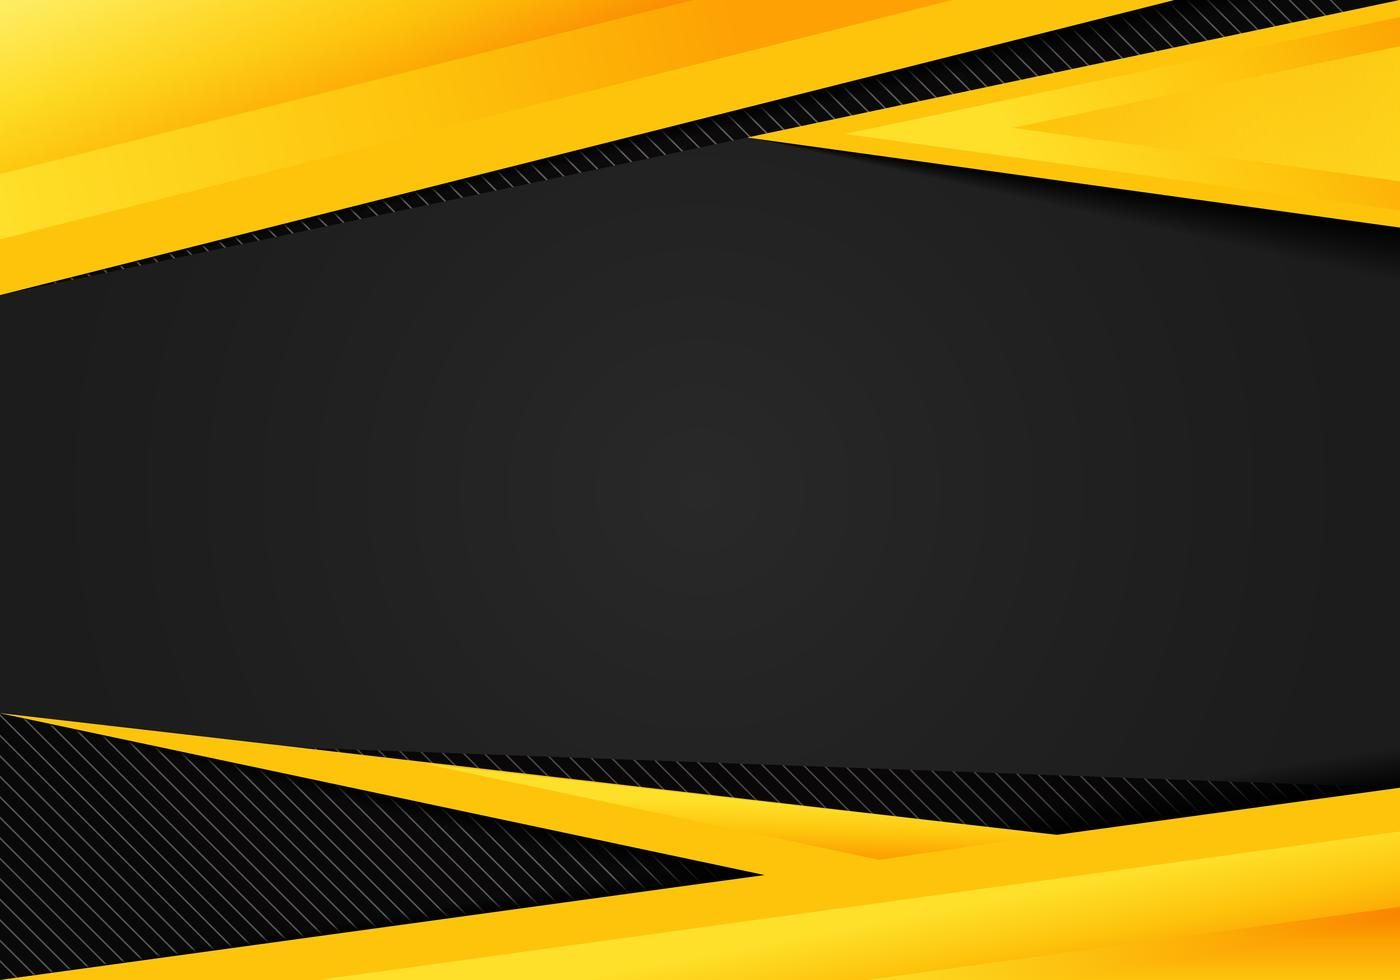 Black And Yellow Stripes Yellow Wallpaper Striped Wallpaper Black Wallpaper